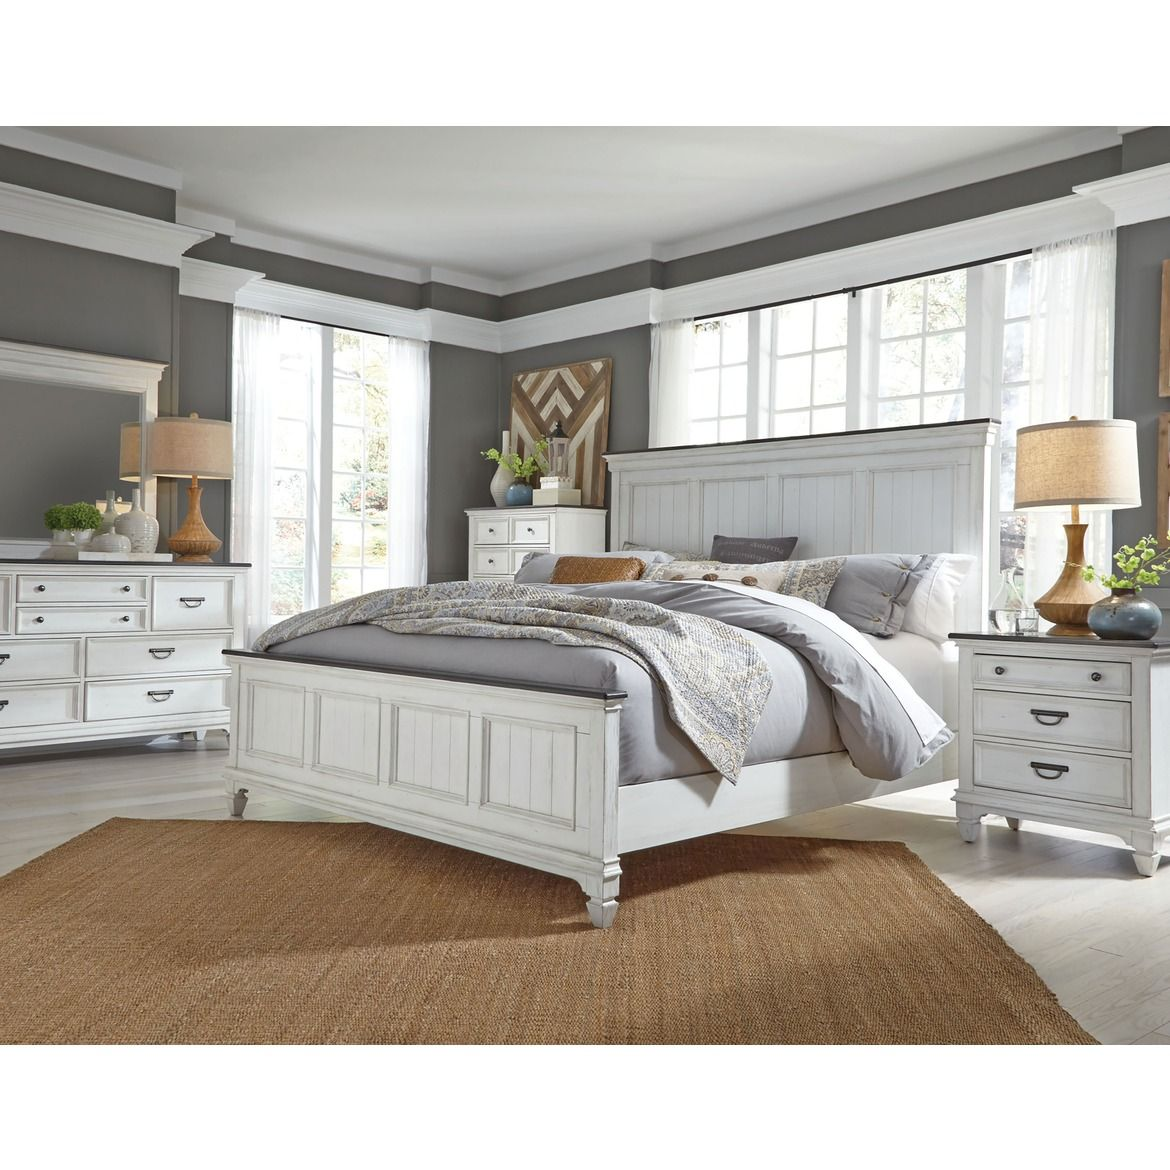 Finley 4pc Queen Bedroom #palletbedroomfurniture